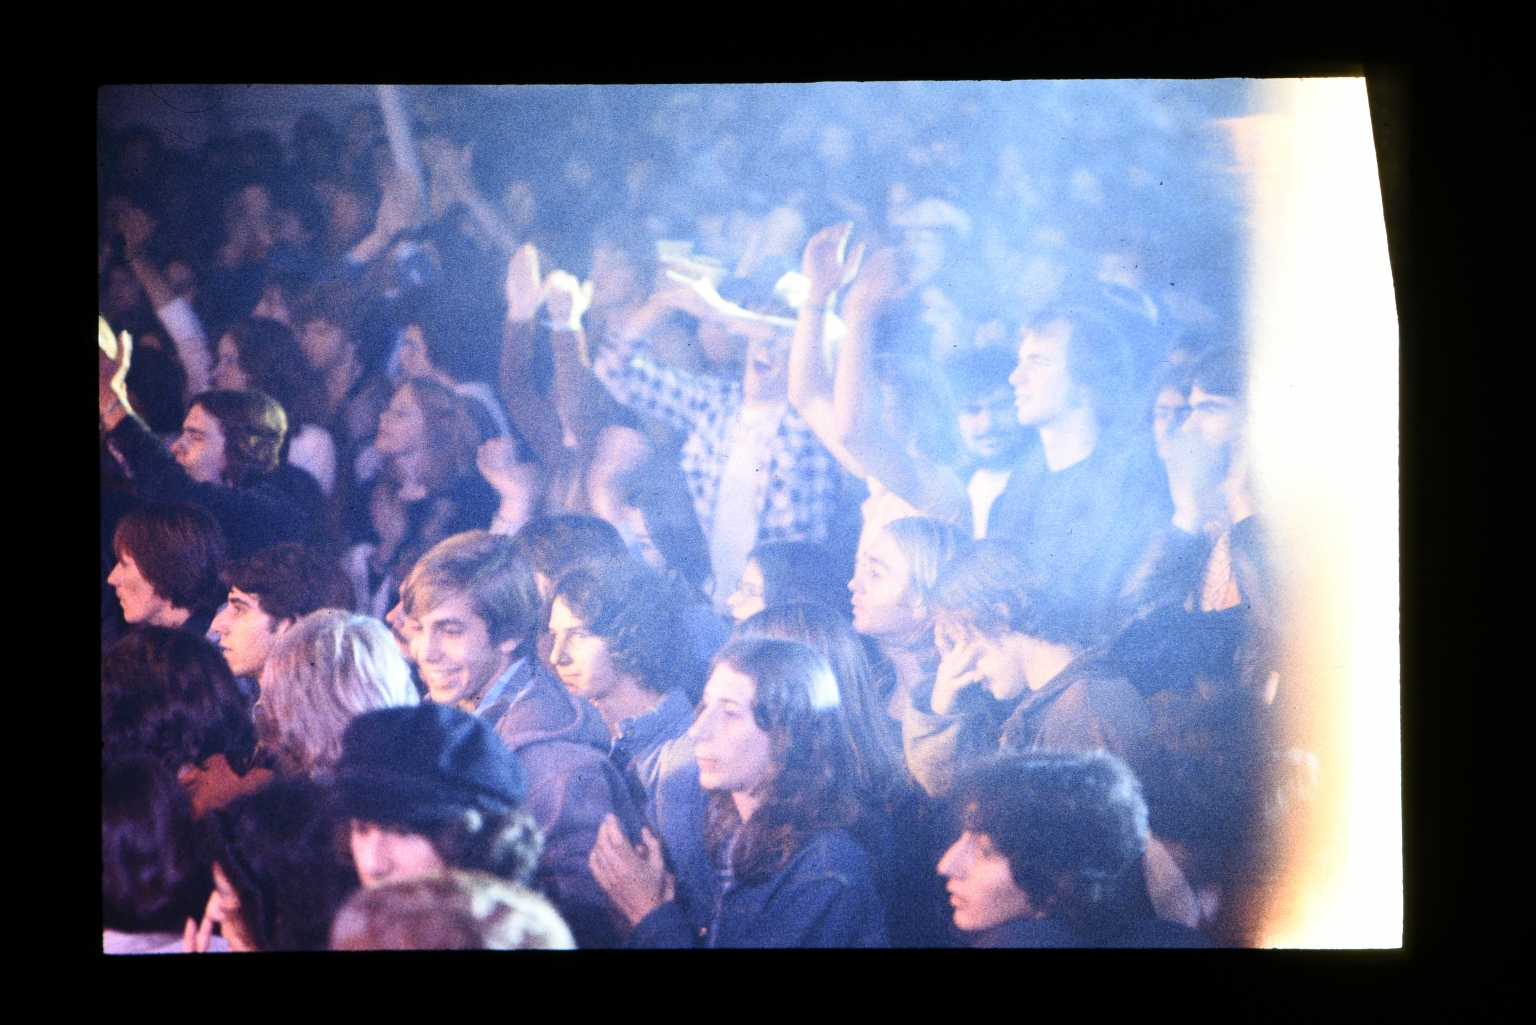 Crowd of students at a concert